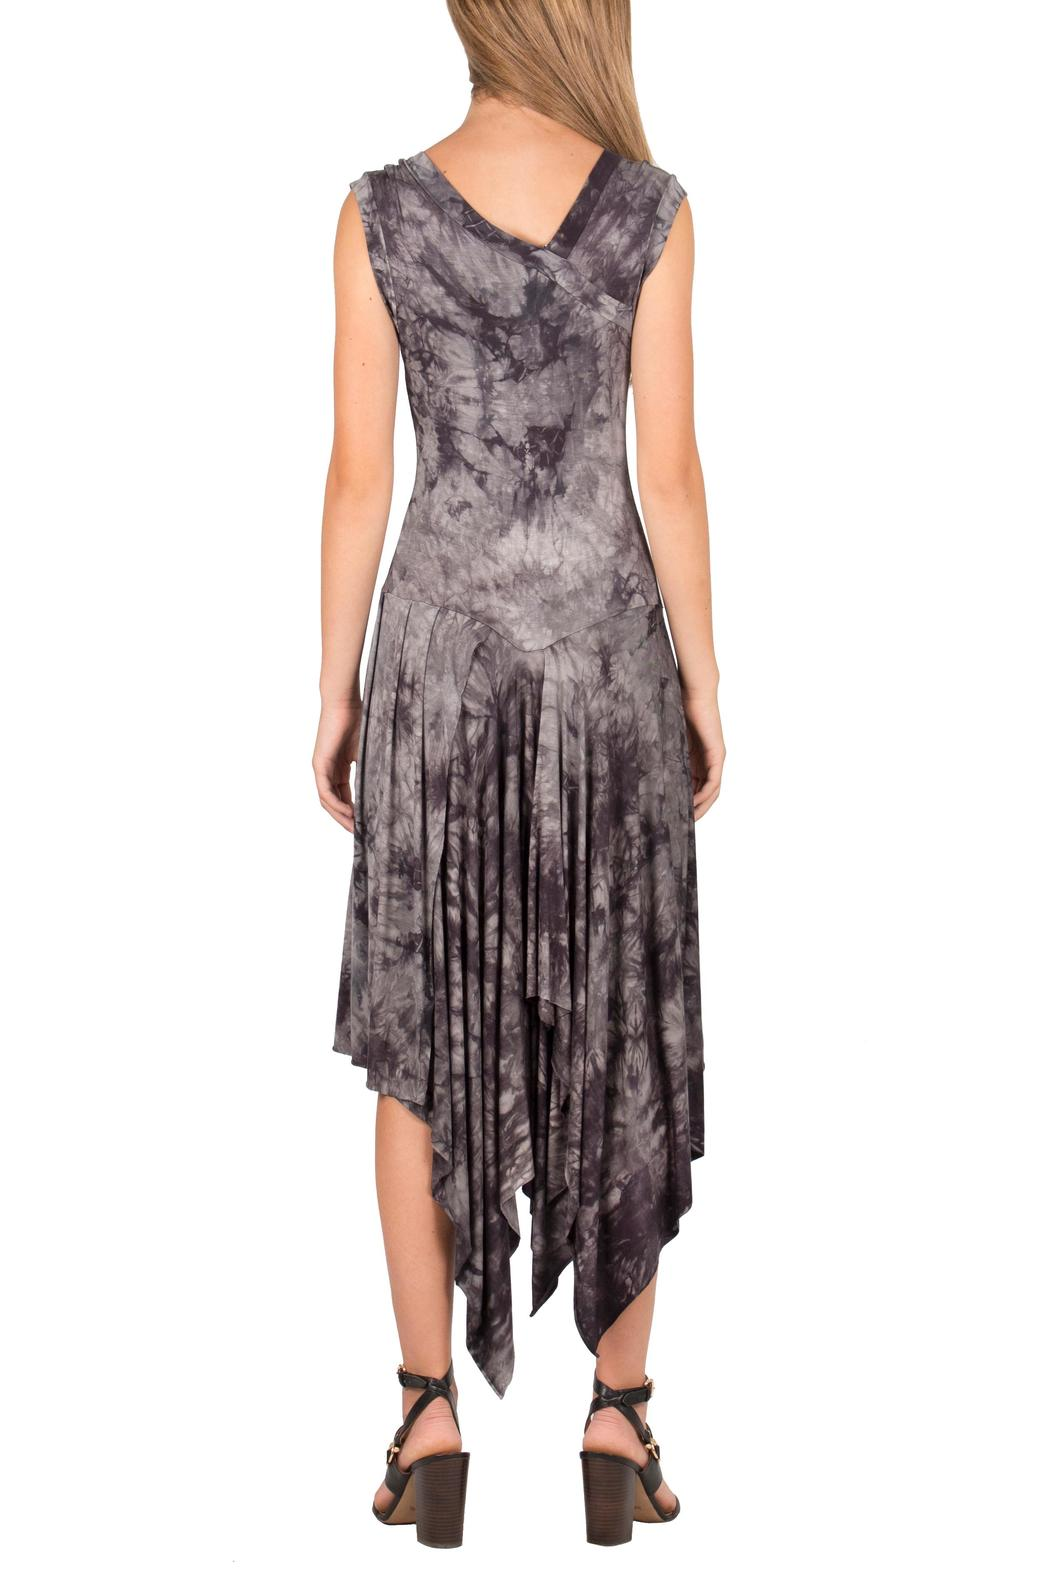 8864fb0f825a2c Lococina Tie- Dye Viscose Dress from Ottawa by Helena Jones — Shoptiques